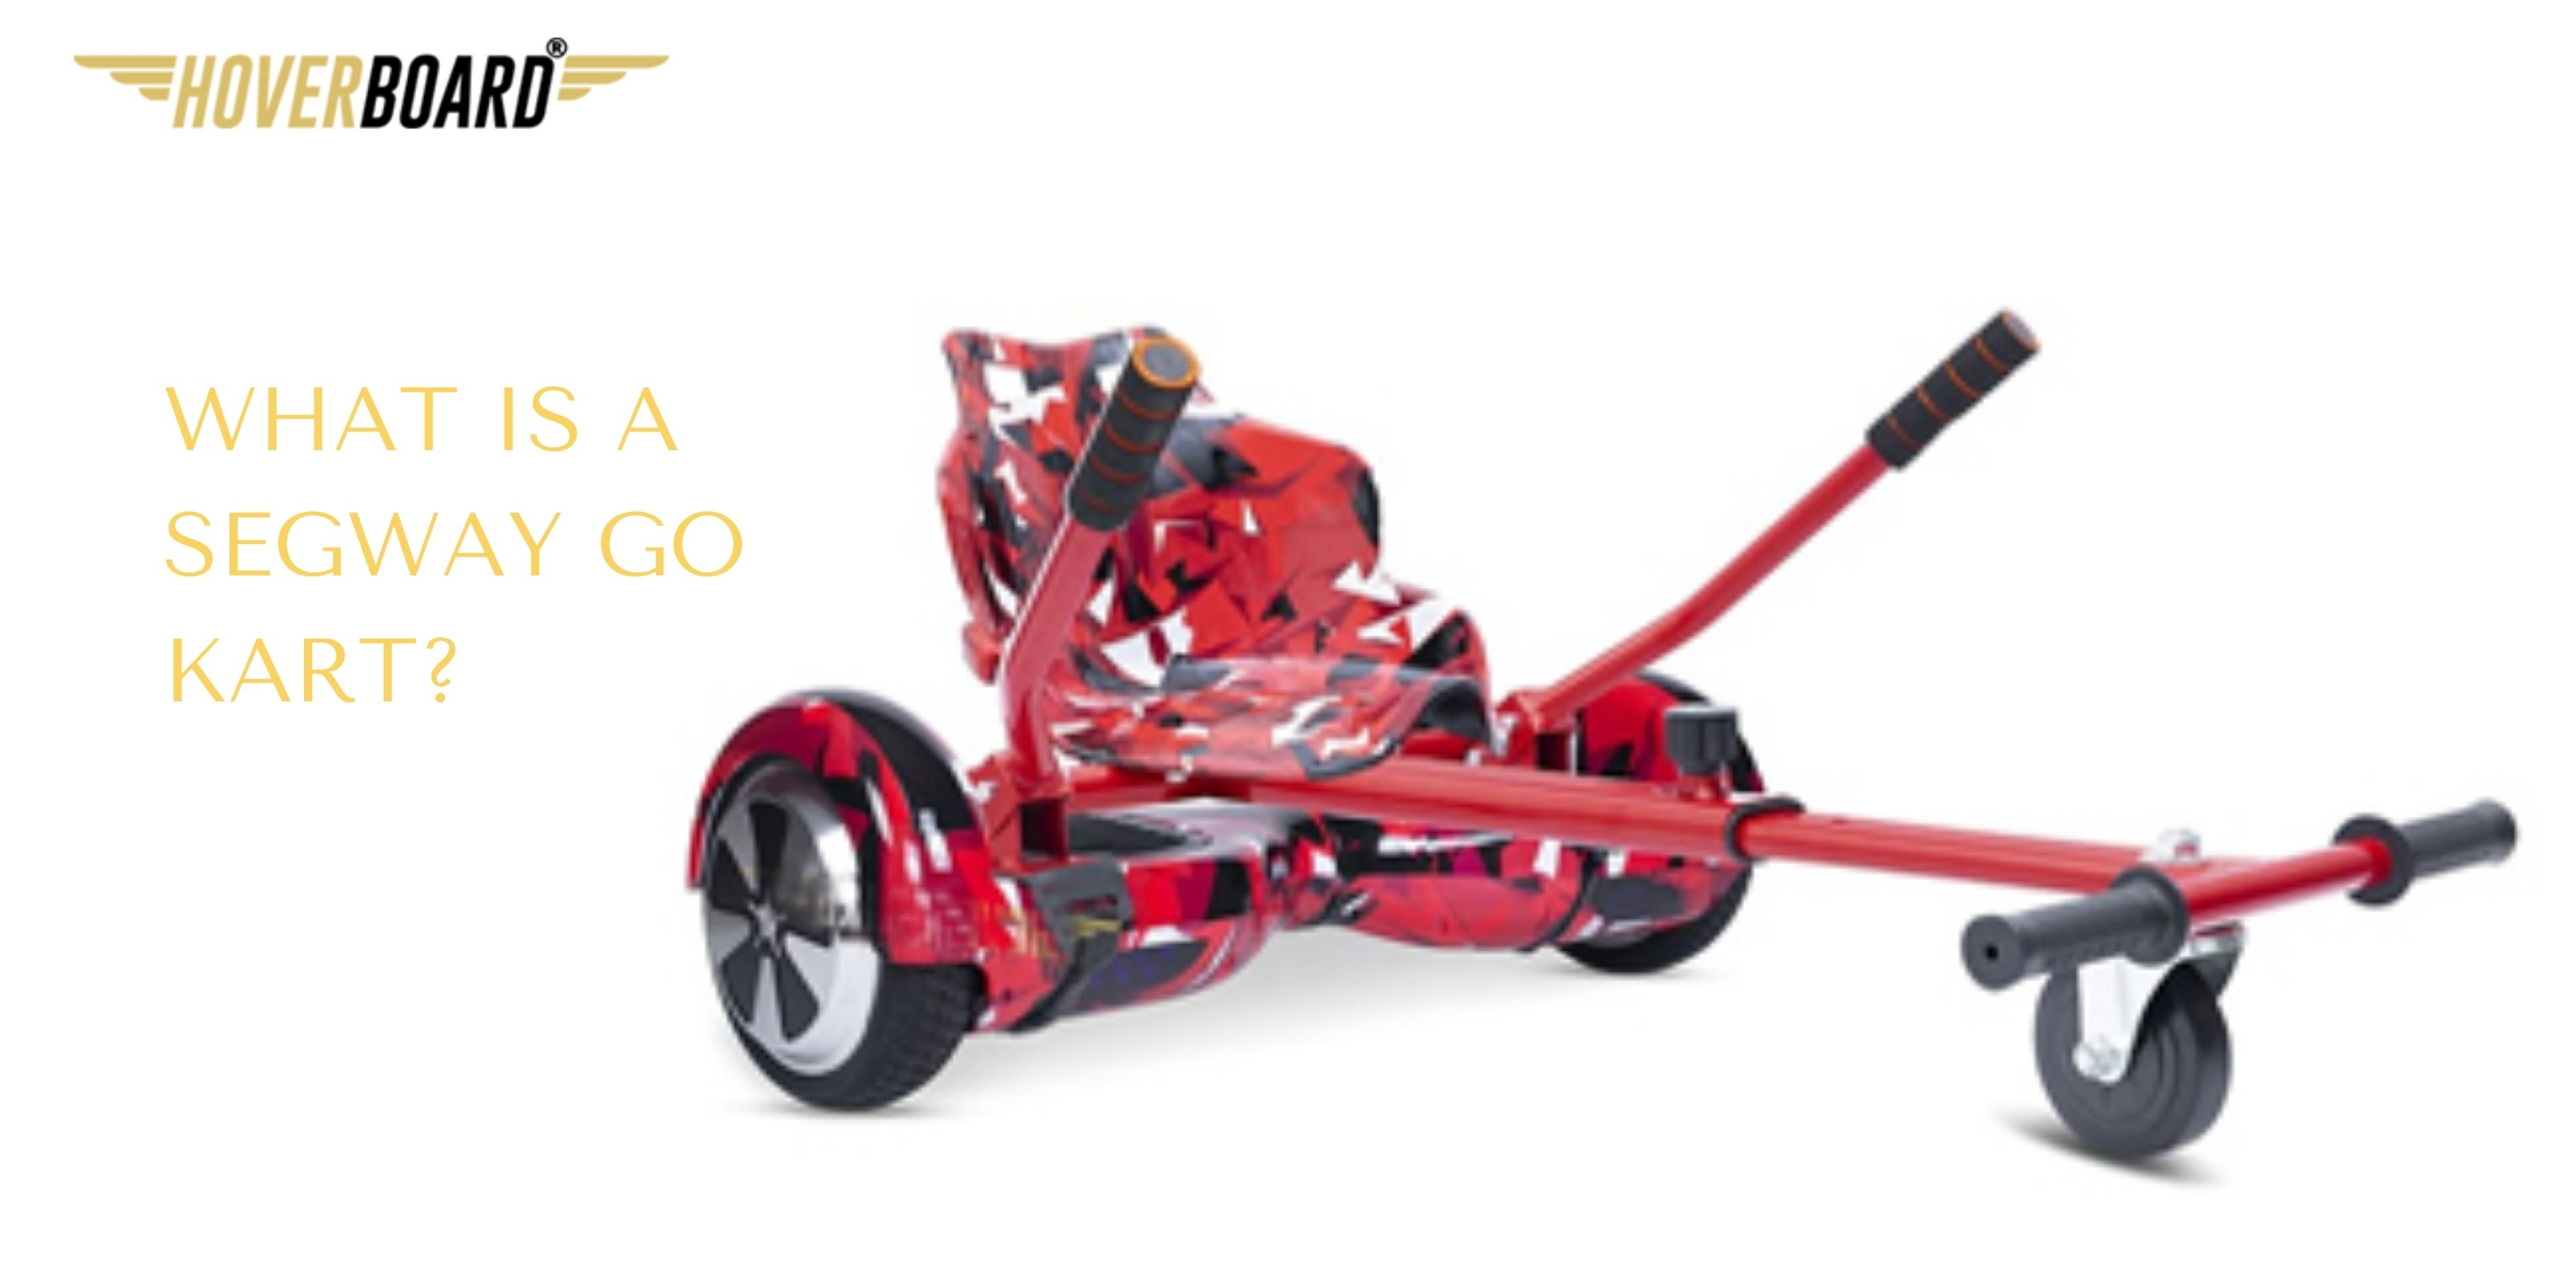 What is a segway go kart?